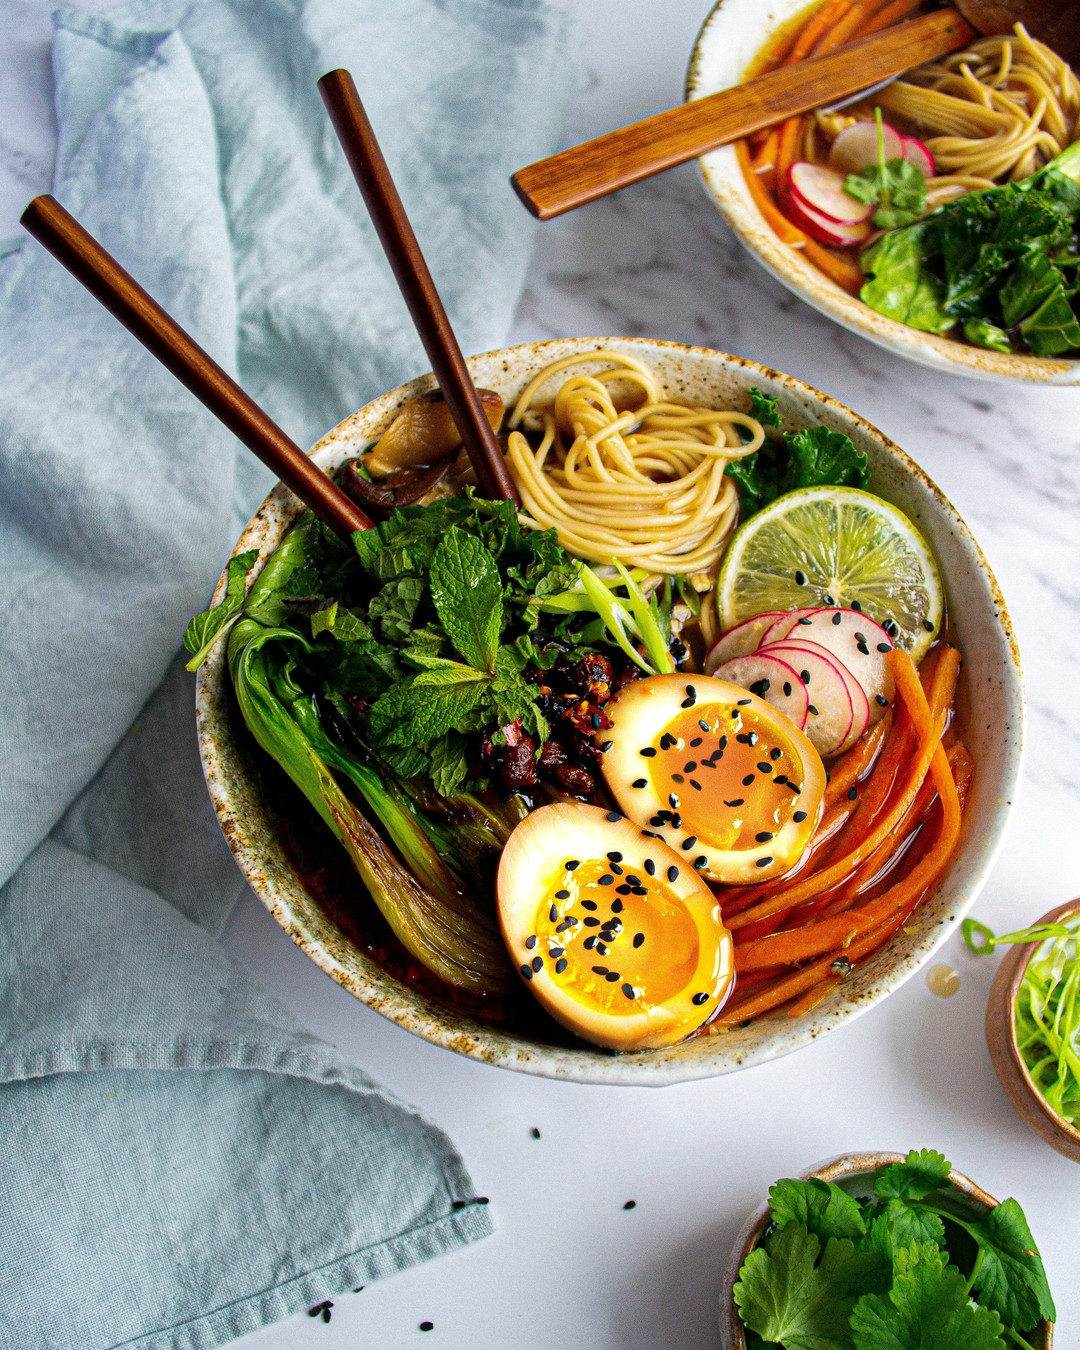 Want this Miso Vegetable Ramen too? Check out our website for the full recipe.